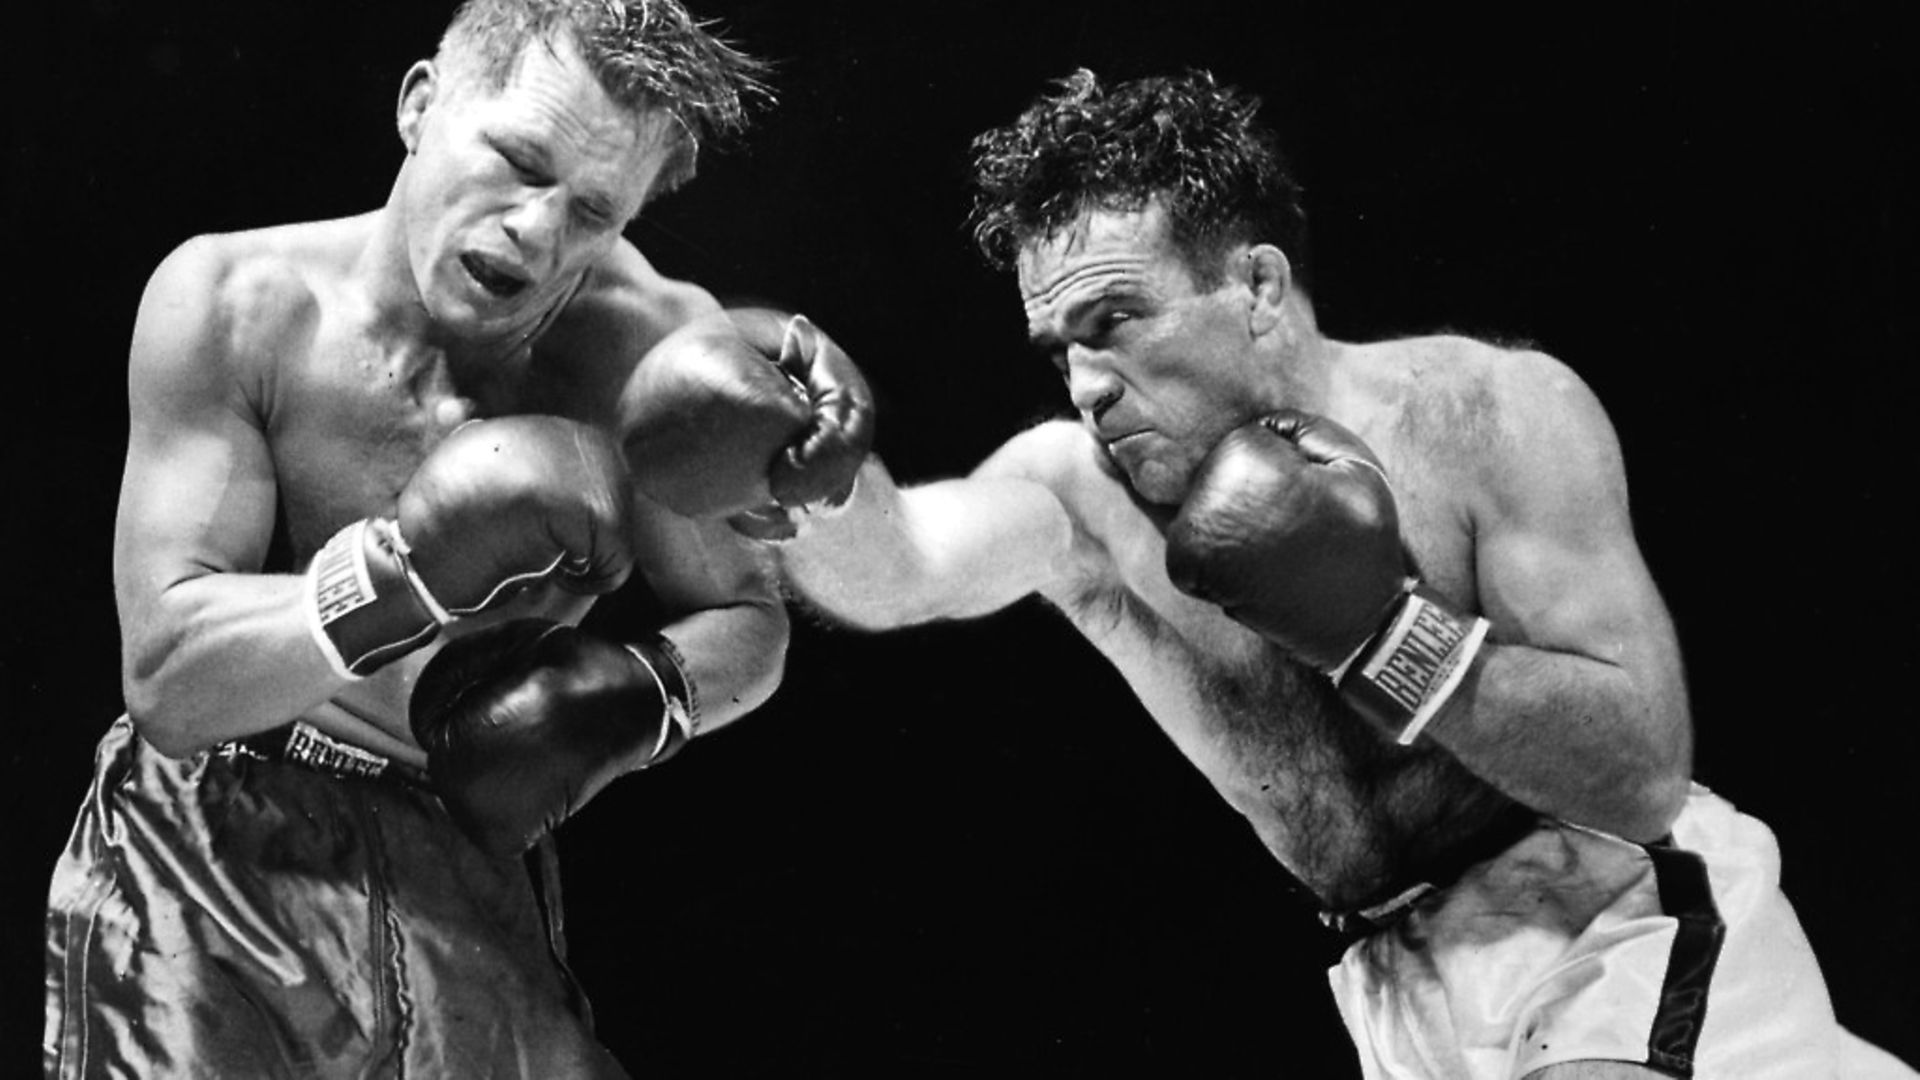 Marcel Cerdan of France delivers a hard right to American boxer Tony Zale's face during their World Middleweight Championship bout at the Roosevelt Stadium, Jersey City. Cerdan won the title in 11 rounds.   (Photo by Keystone/Getty Images) - Credit: Getty Images